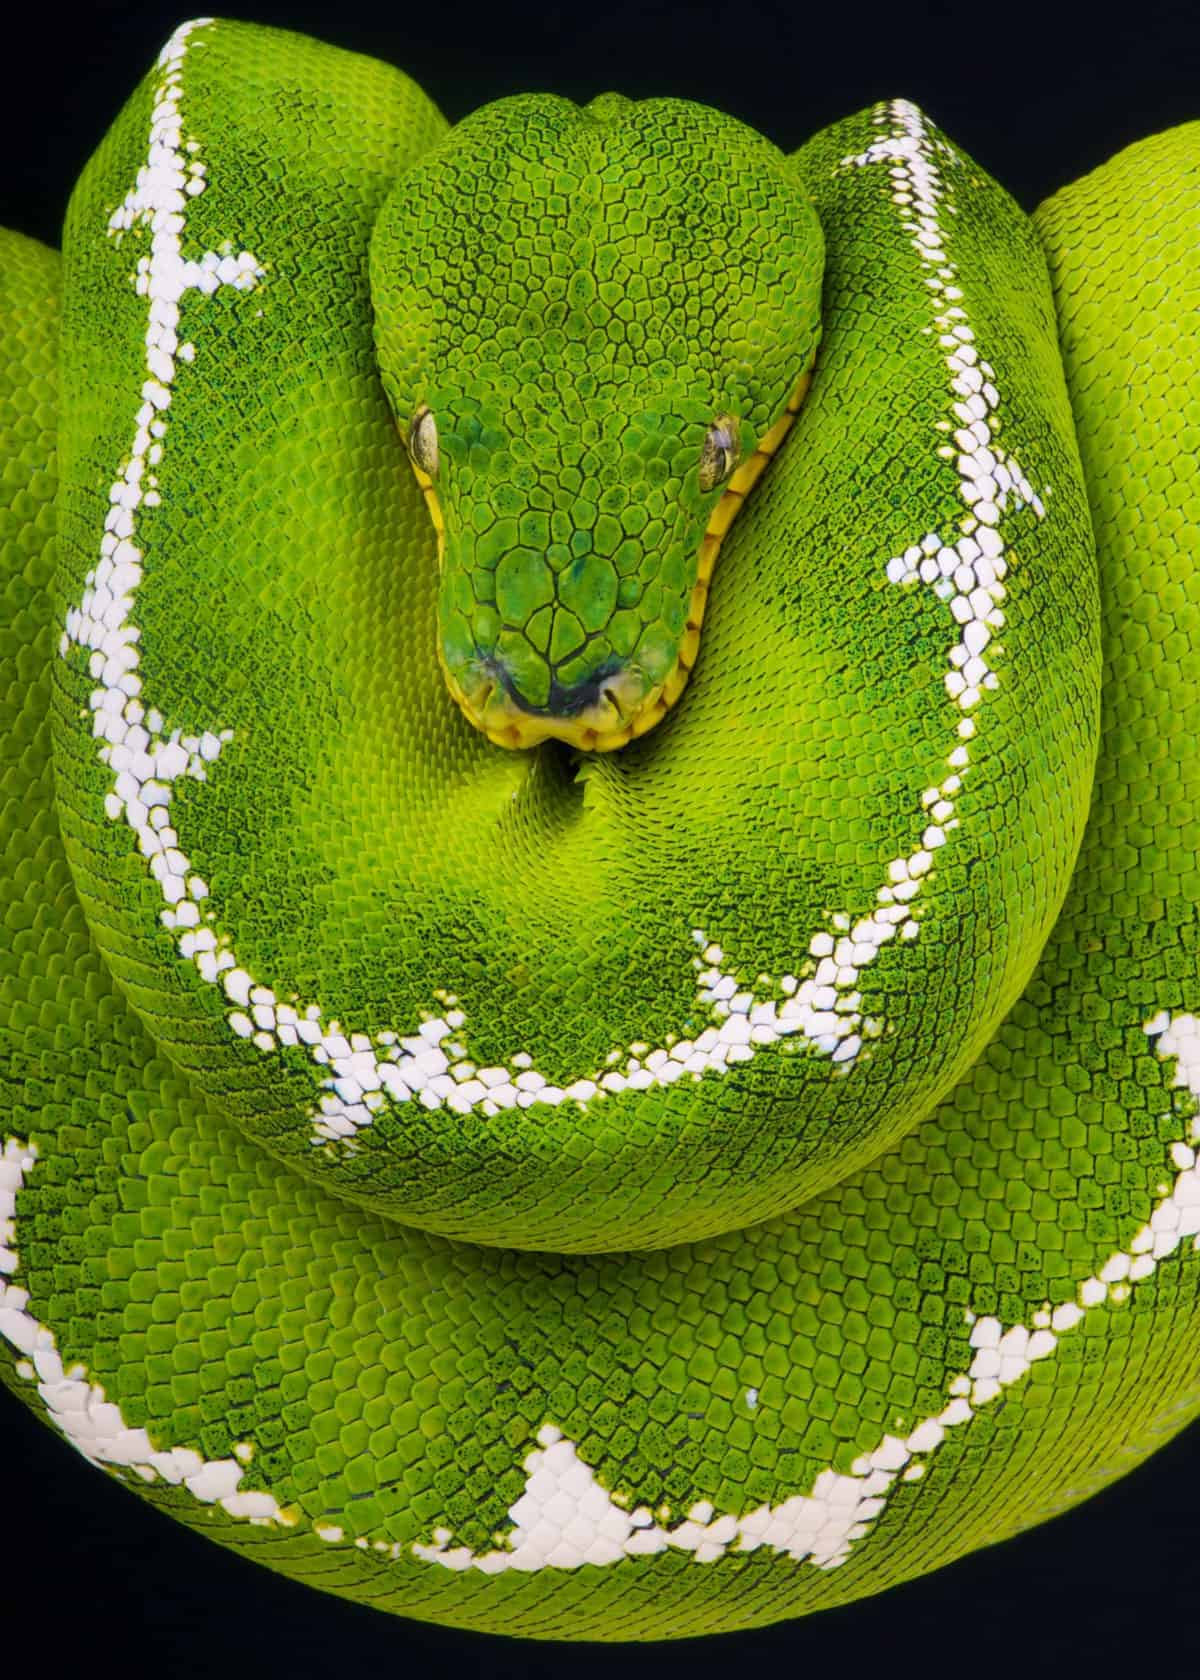 Emerald tree boa facts